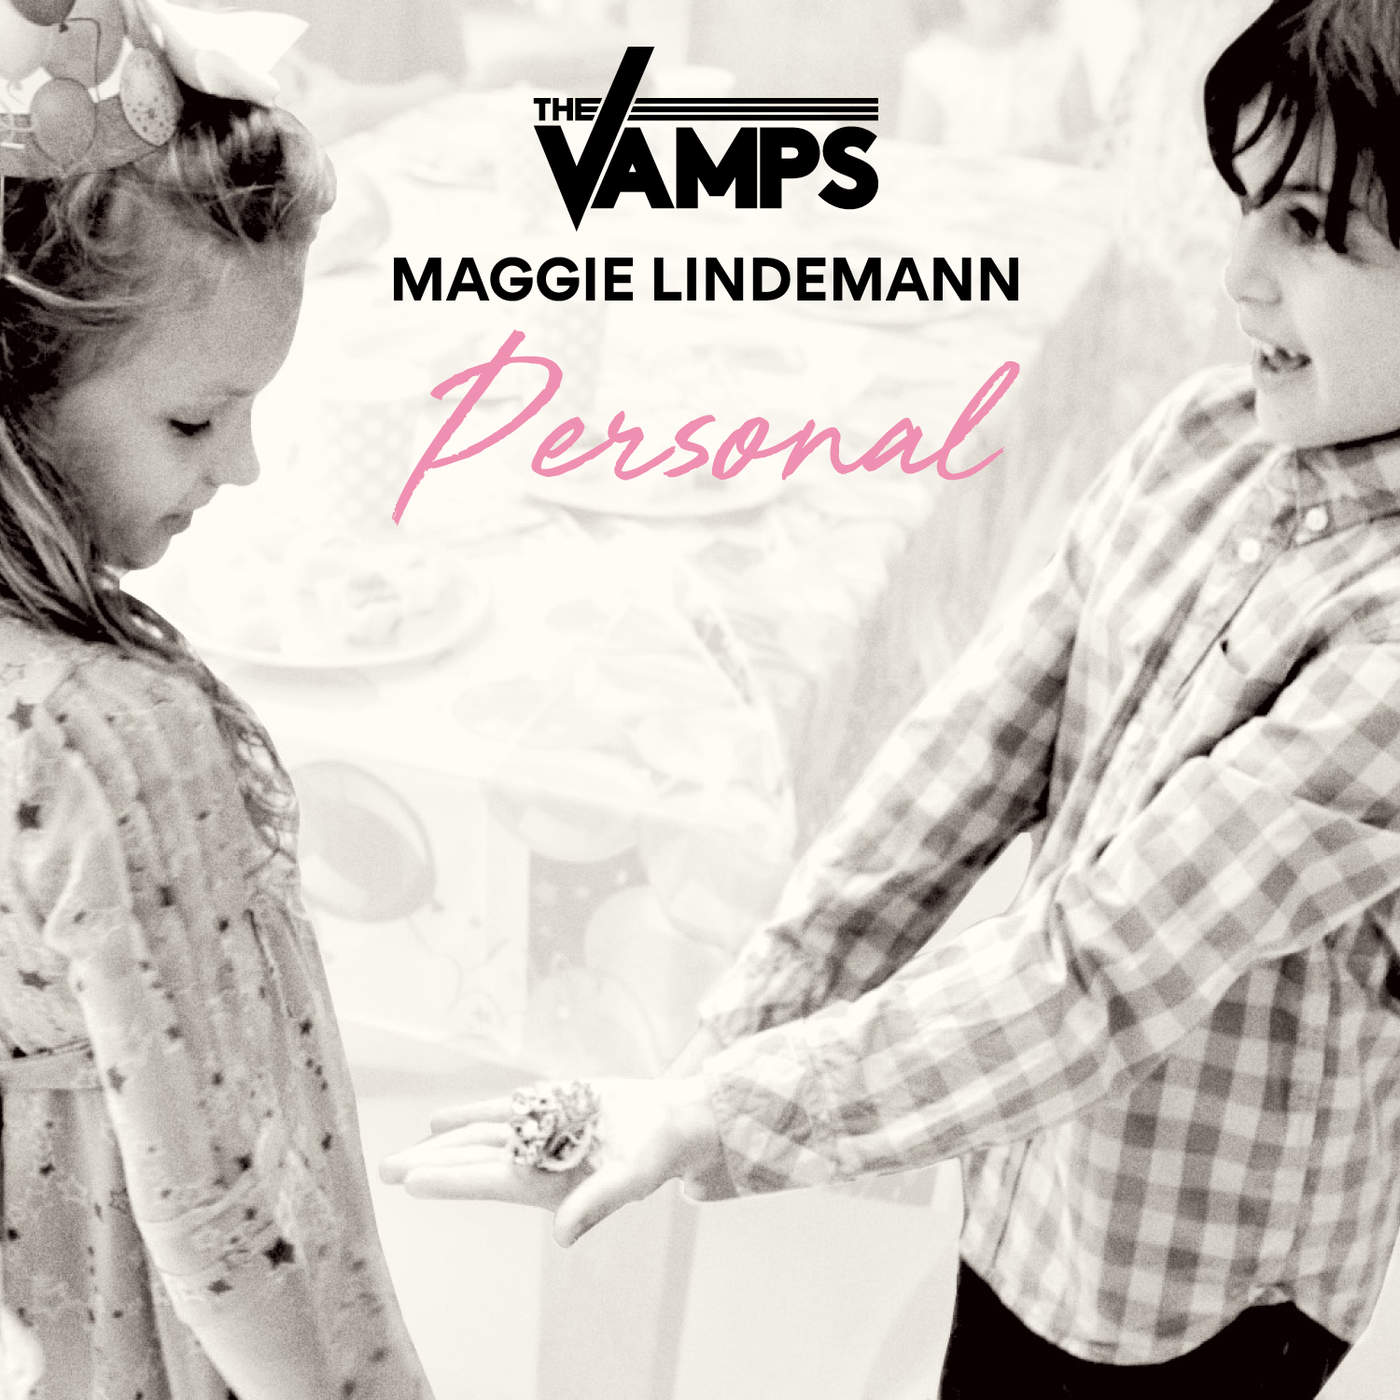 The Vamps - Personal (feat. Maggie Lindemann) - Single